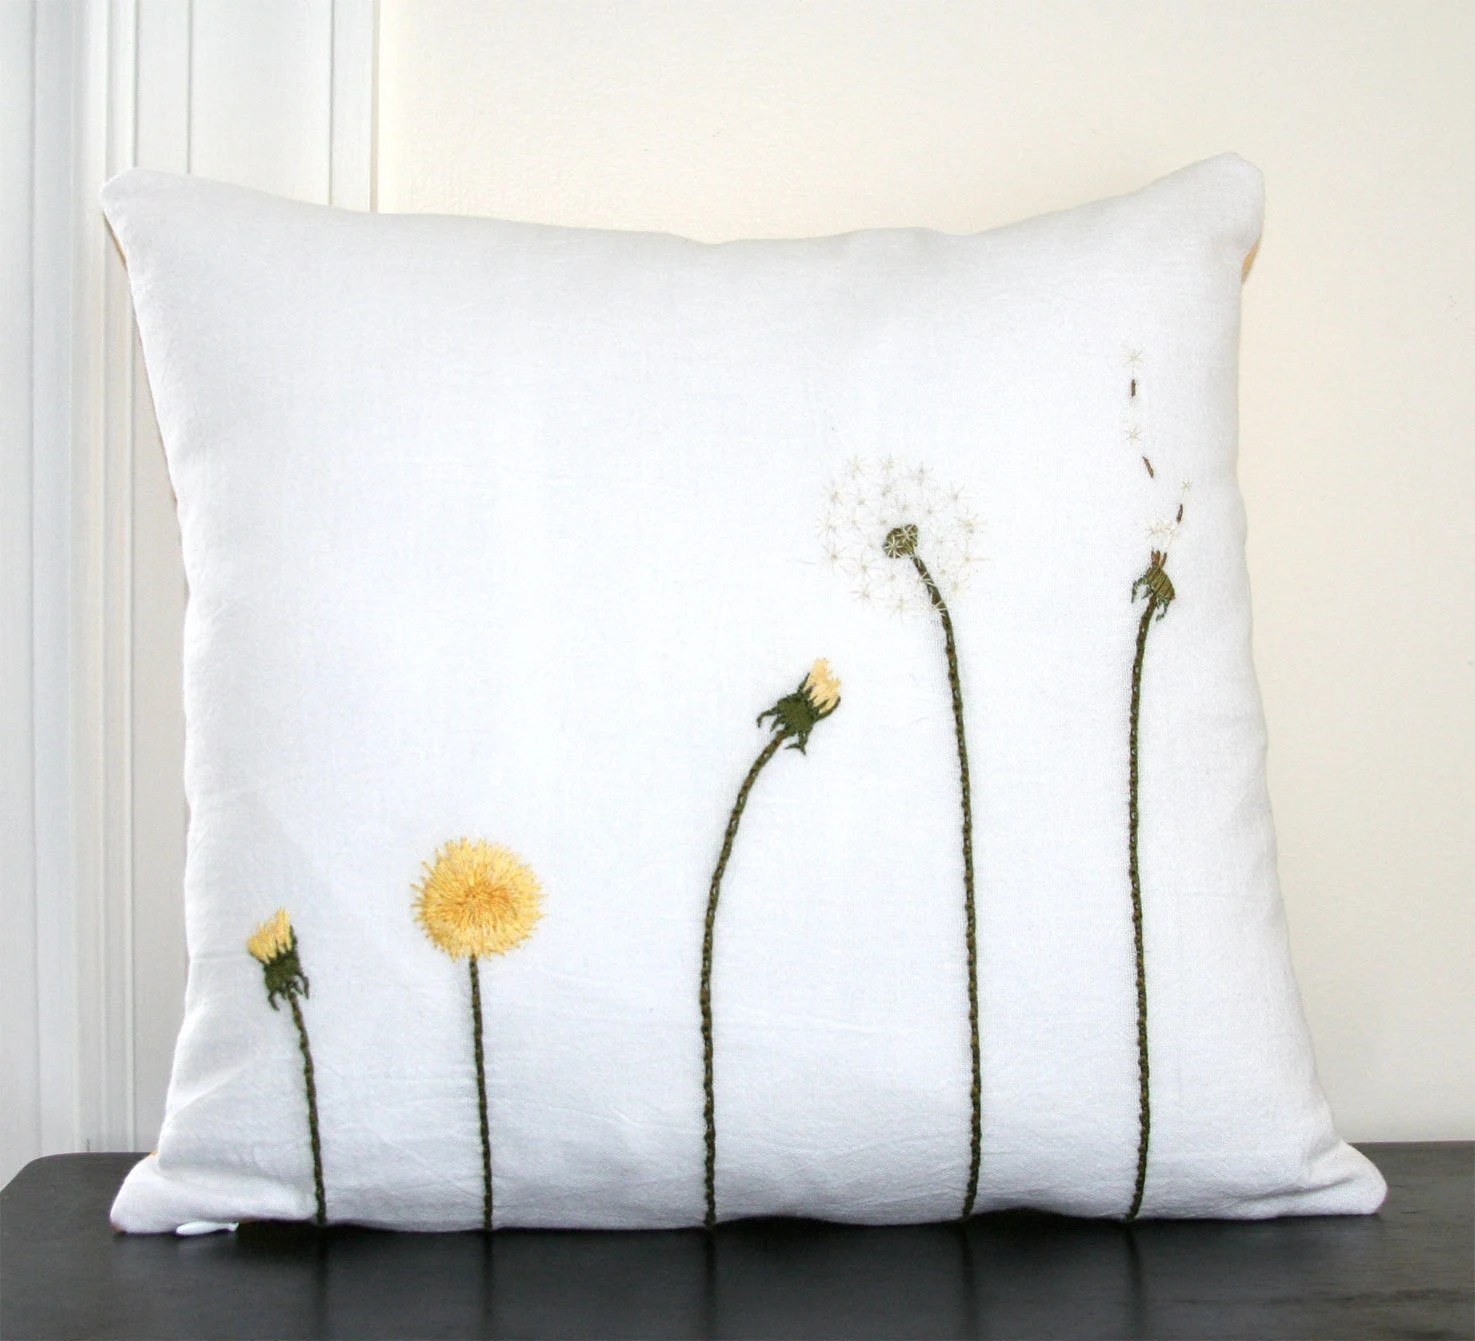 Dandelion Life Cycle Pillow Cover Hand Embroidered